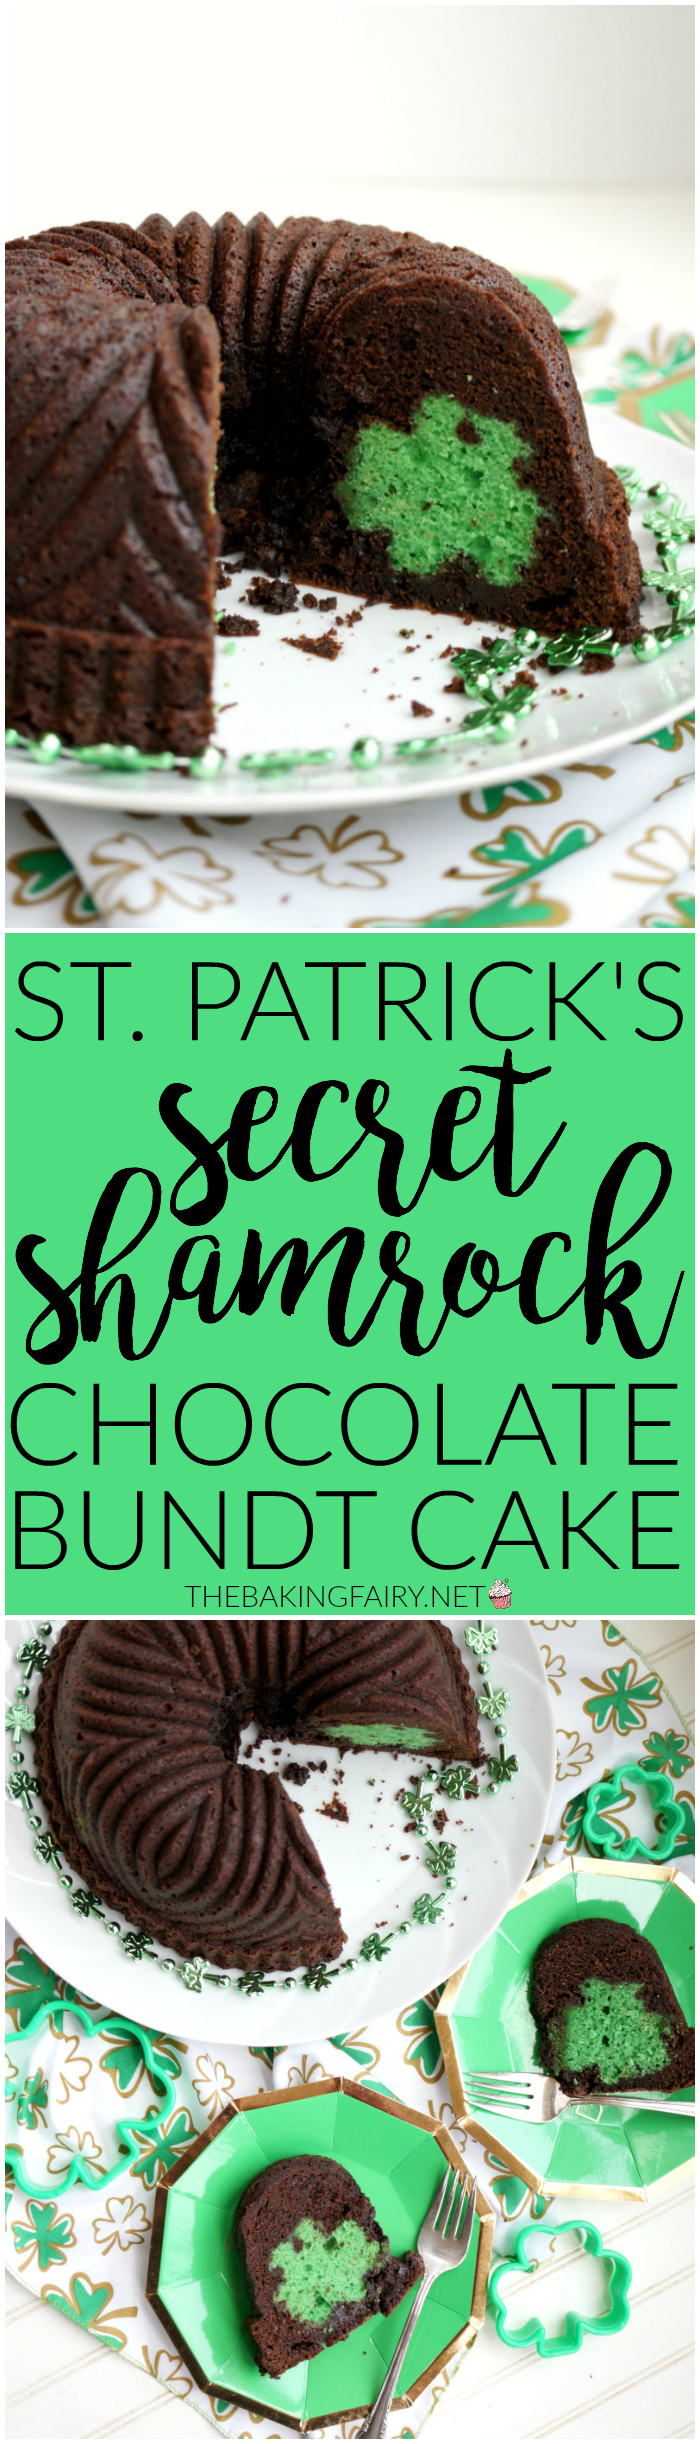 st. patrick secret shamrock chocolate bundt cake | The Baking Fairy